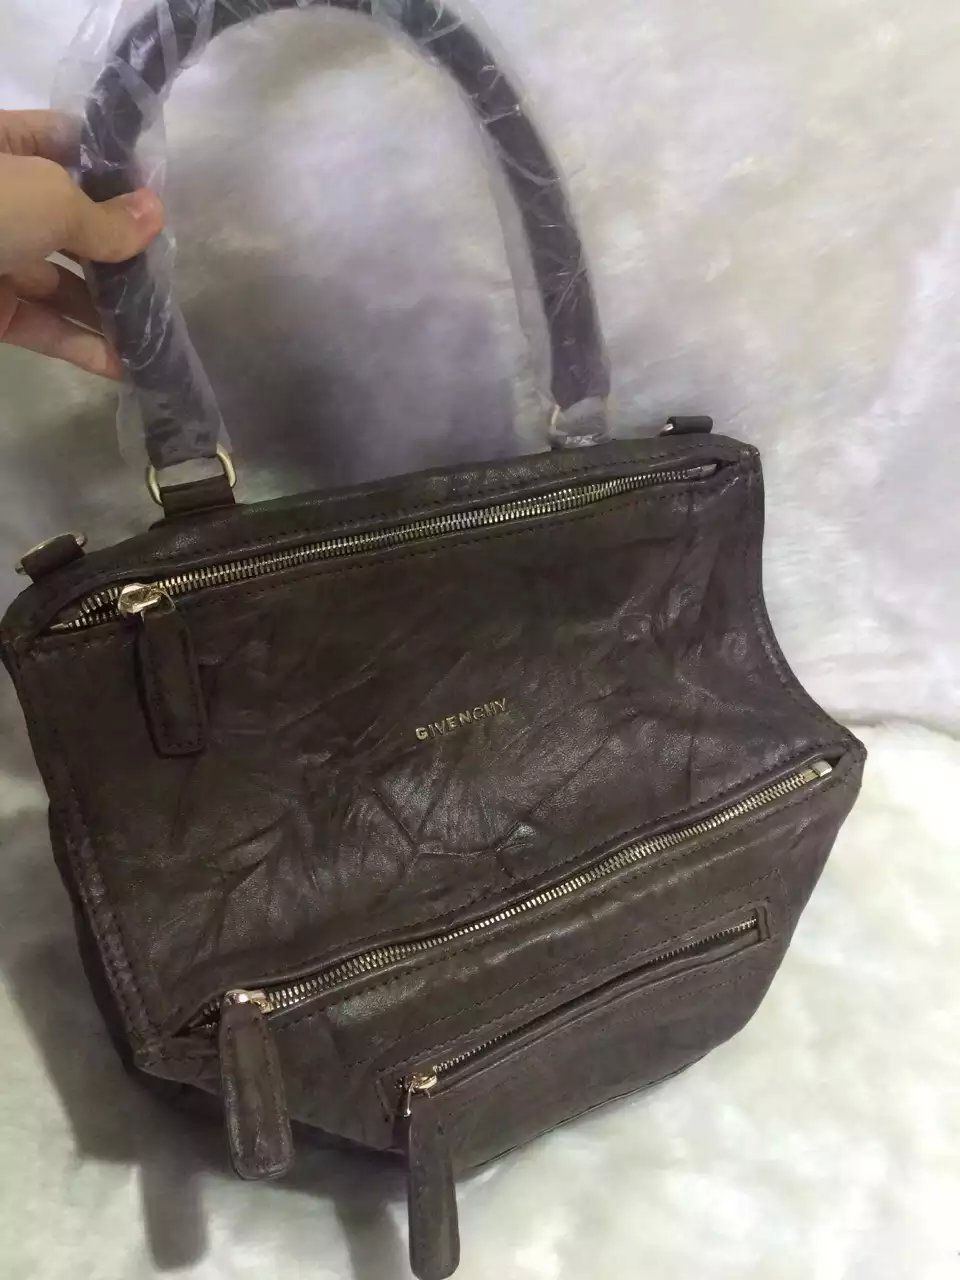 S S 2016 Givenchy Collection Outlet-Givenchy  PANDORA  Large Khaki Pepe  Sheepskin Leather Bag Sale Online 5f0b7ea962ec2